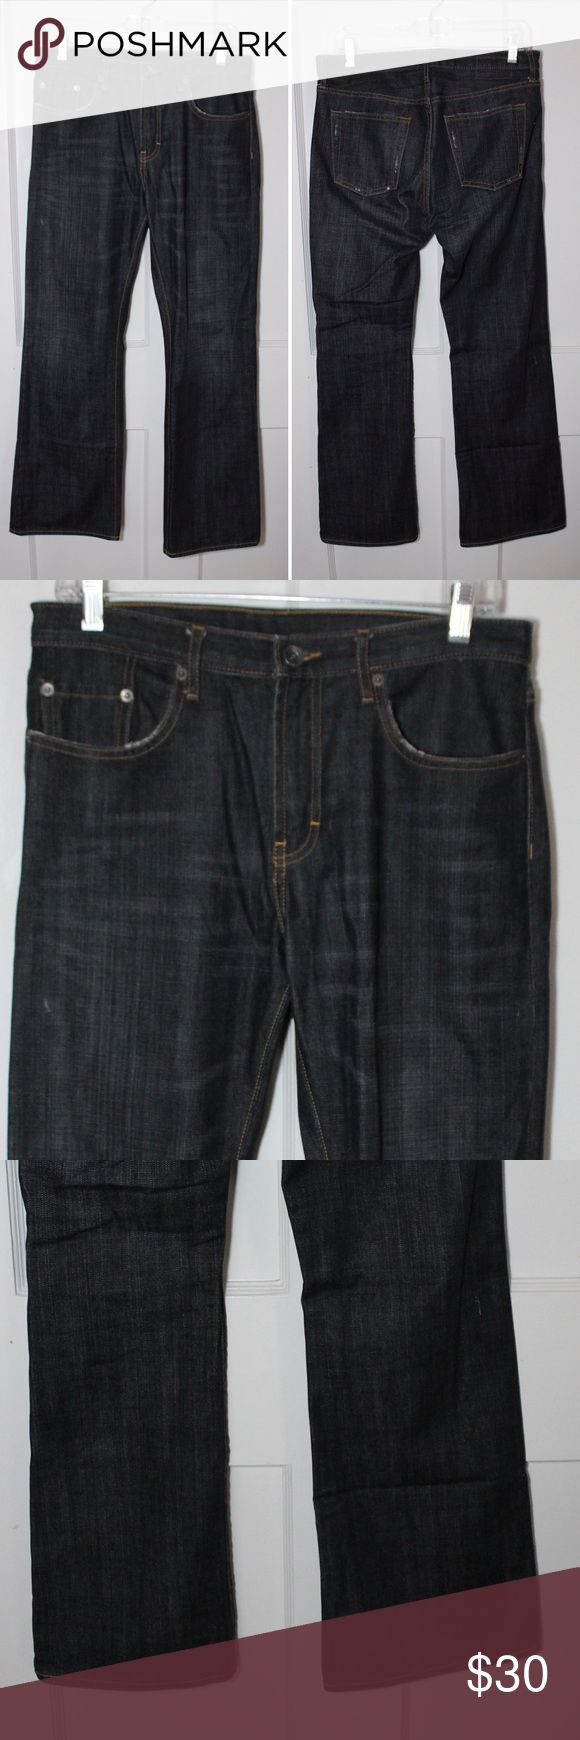 Banana Republic Mens Bootcut Jeans Banana Republic Mens Bootcut Jeans. Excellent condition. Minor fading from use. No rips or stains.  Size: 30/30 Waist: 16 Rise: 10.5 Inseam: 30 Leg opening: 9.5 Banana Republic Jeans Bootcut